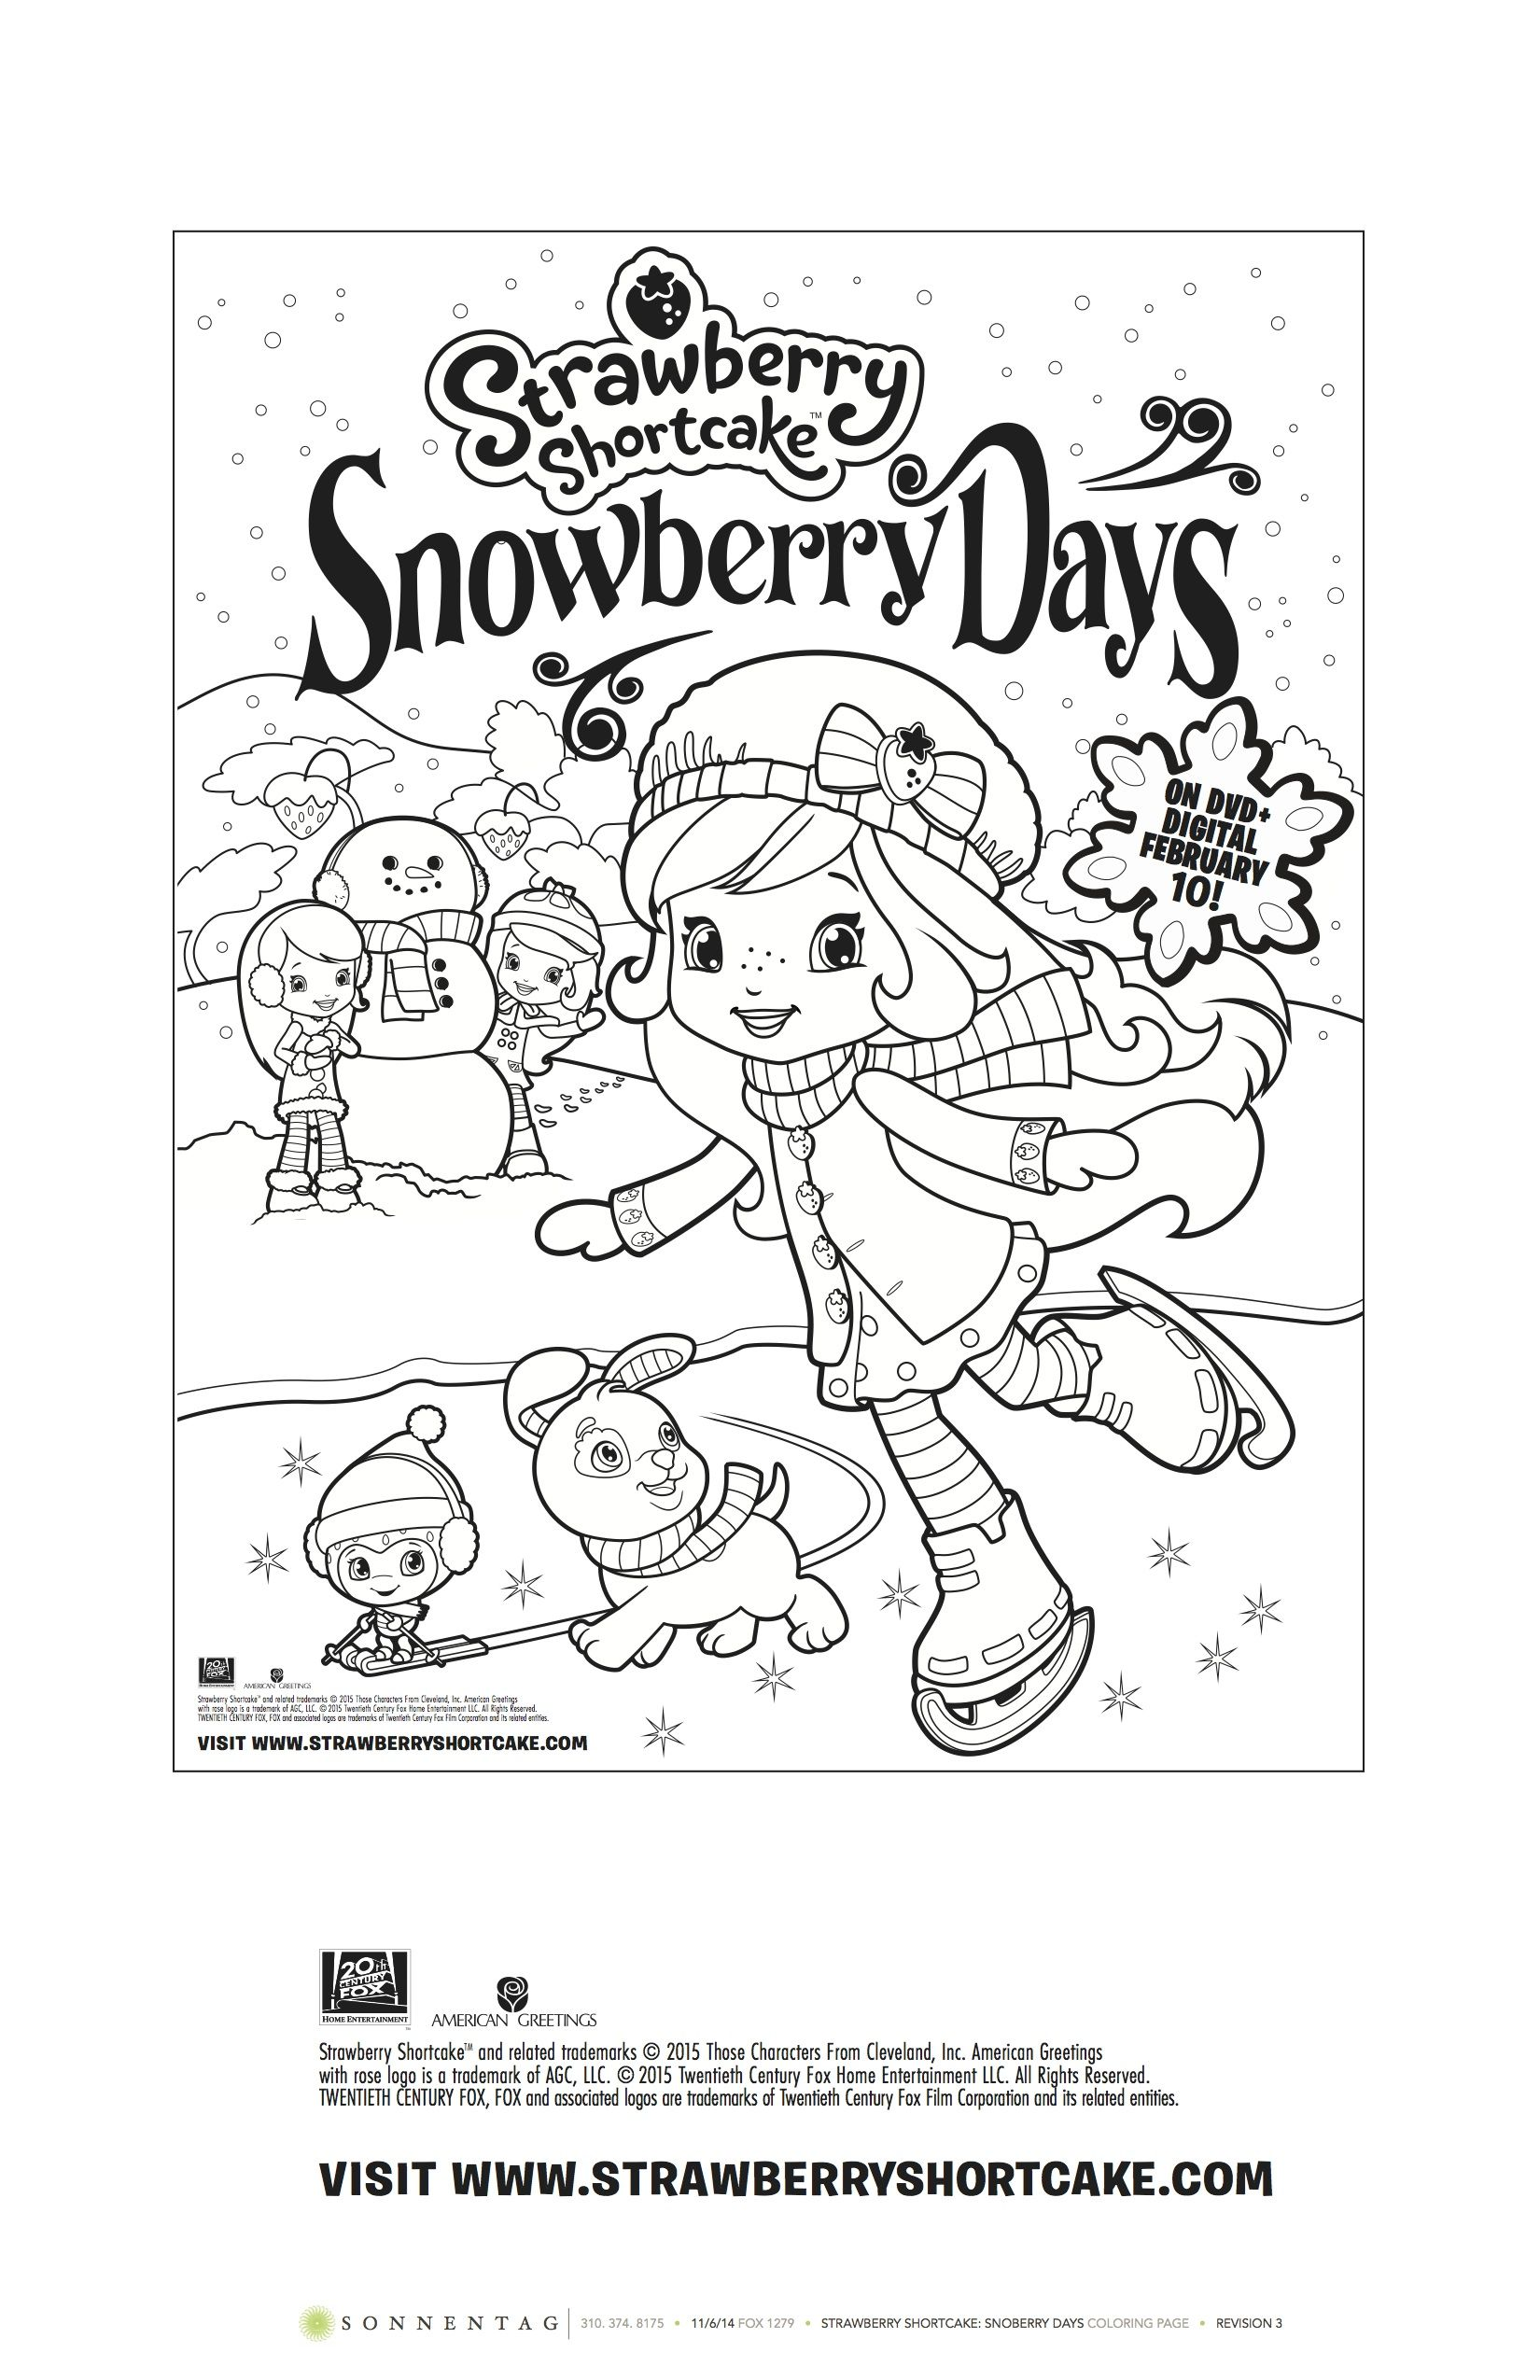 Have a strawberry shortcake fan in your house free strawberry have a strawberry shortcake fan in your house free strawberry shortcake coloring page plus enter kristyandbryce Choice Image